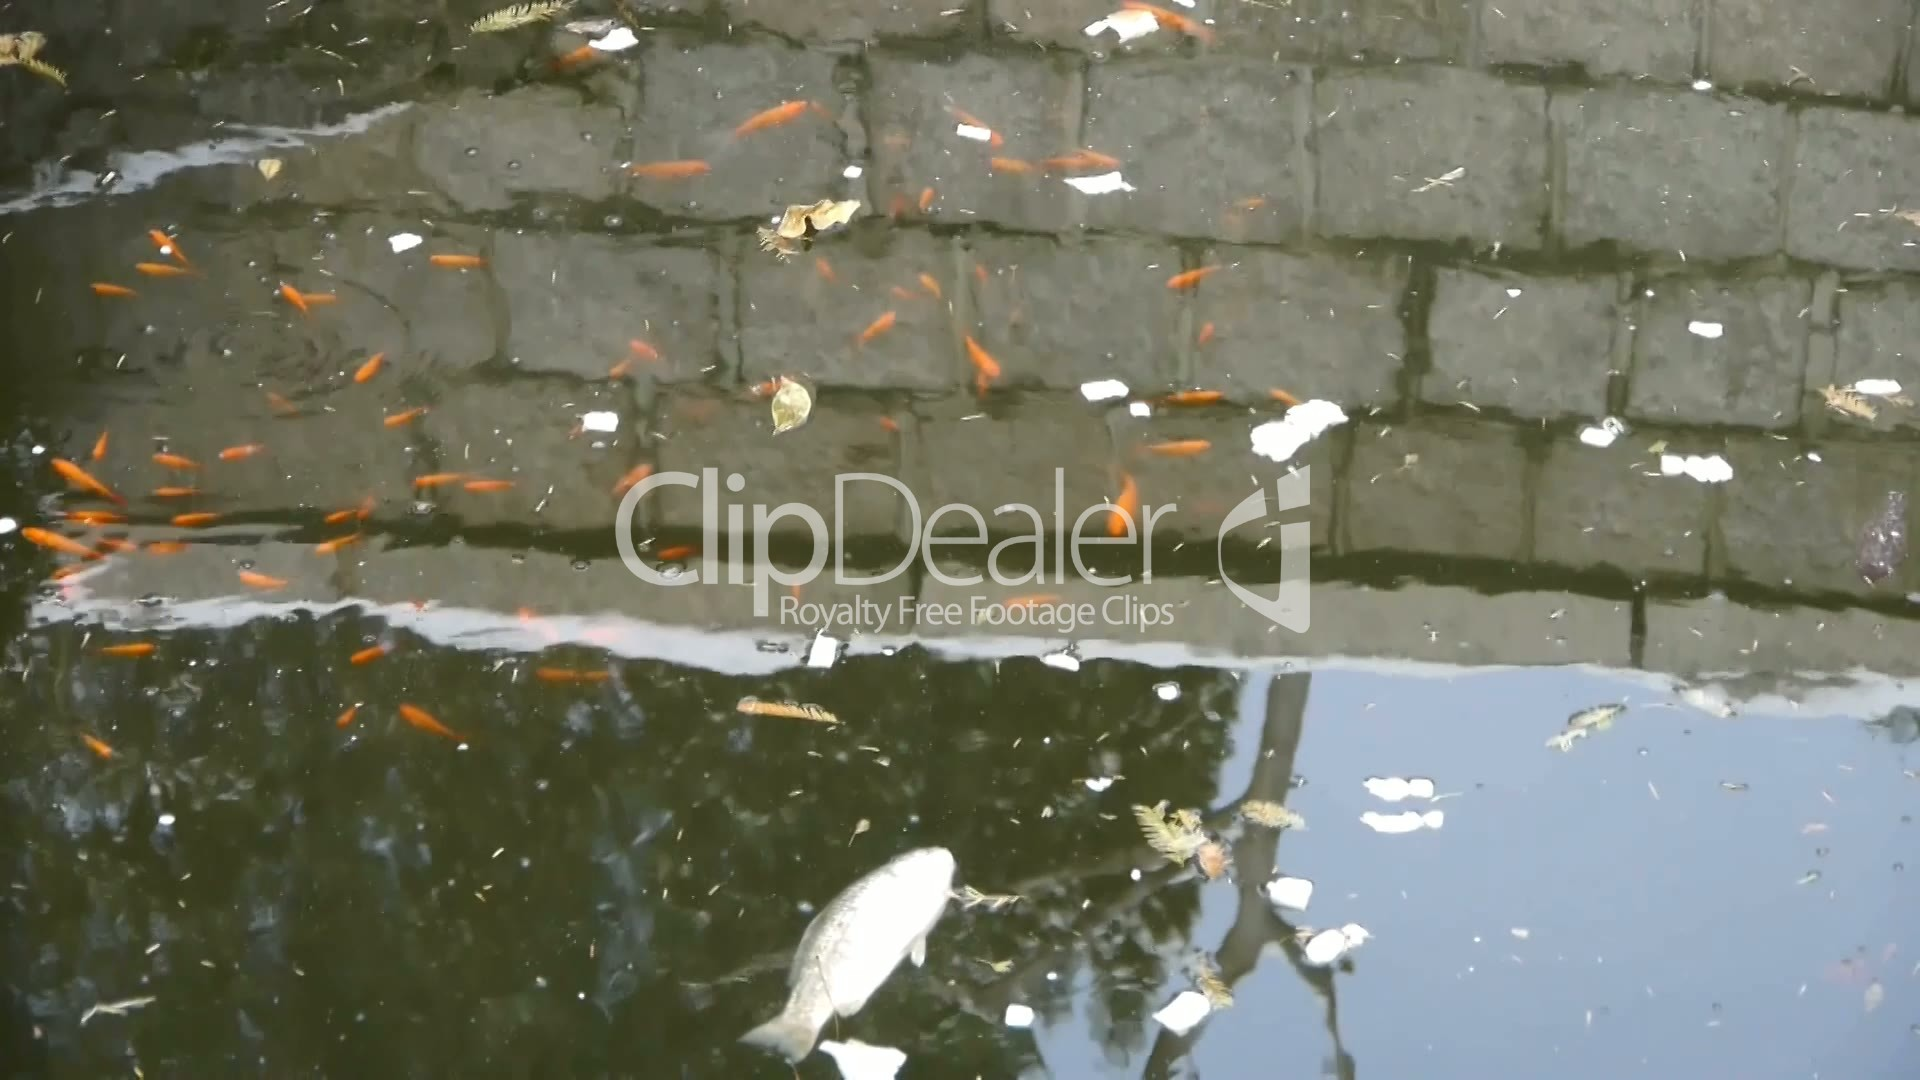 fish in dirty water,pollute environment,reflection : Royalty